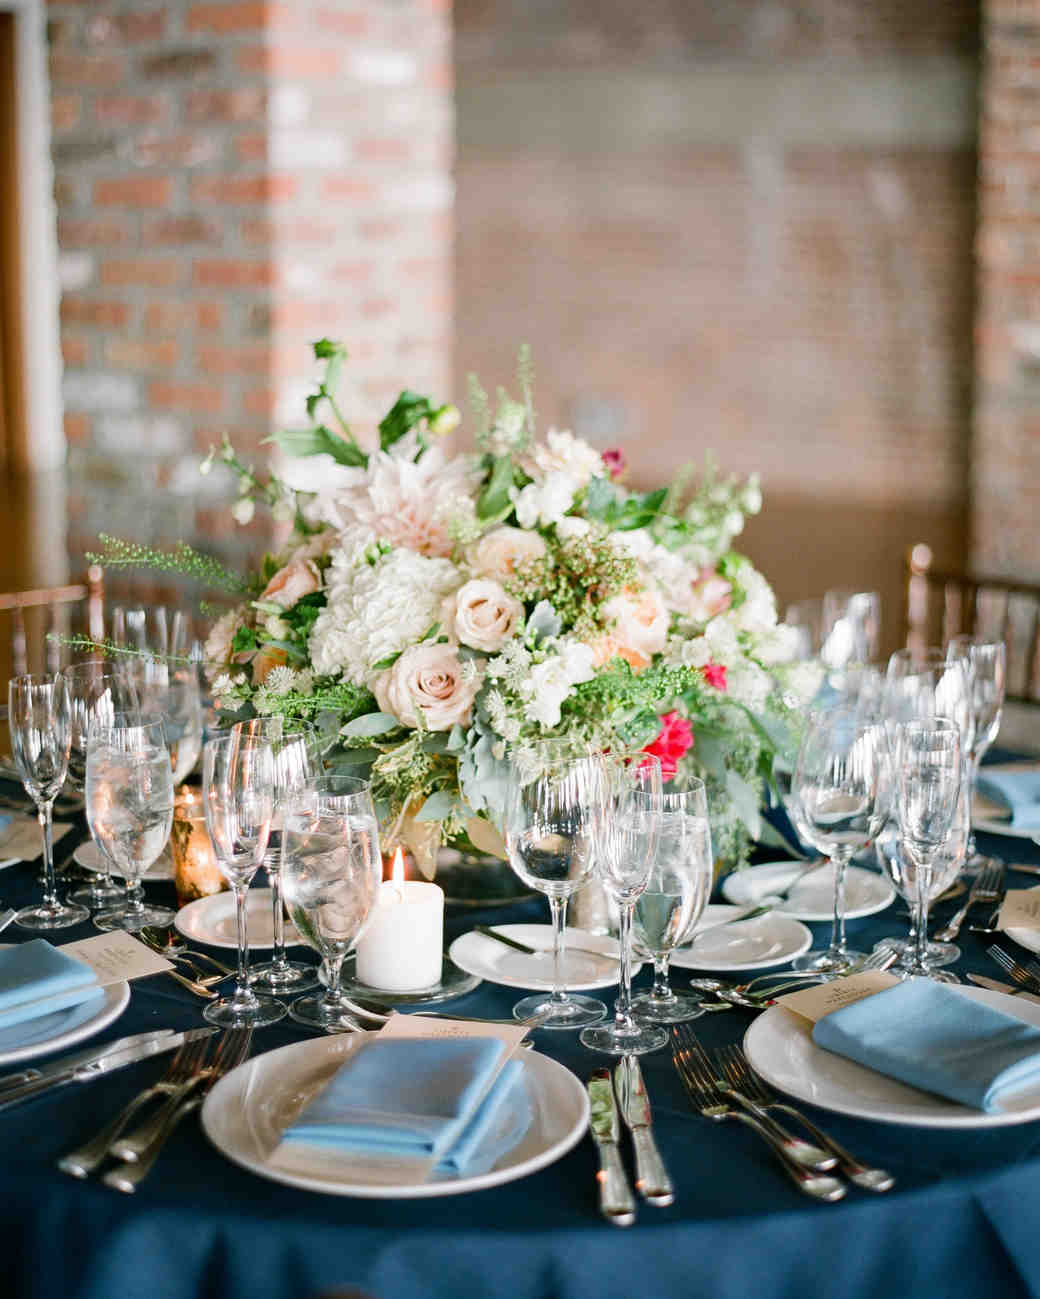 Flowers For Wedding Table Centerpieces: 75 Great Wedding Centerpieces